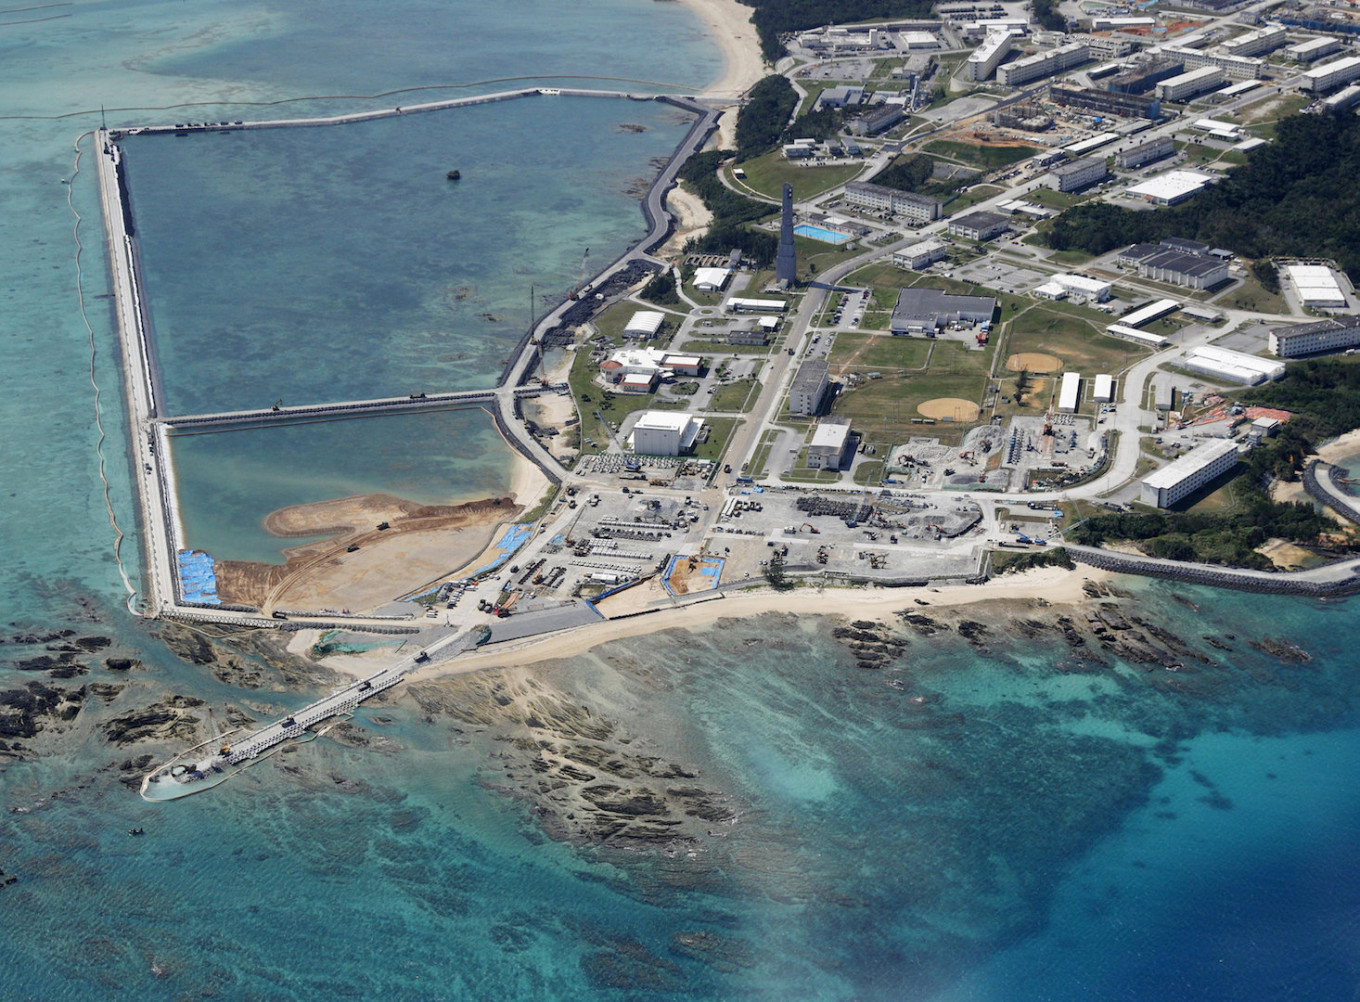 Japan to buy $146 million island for US military drills